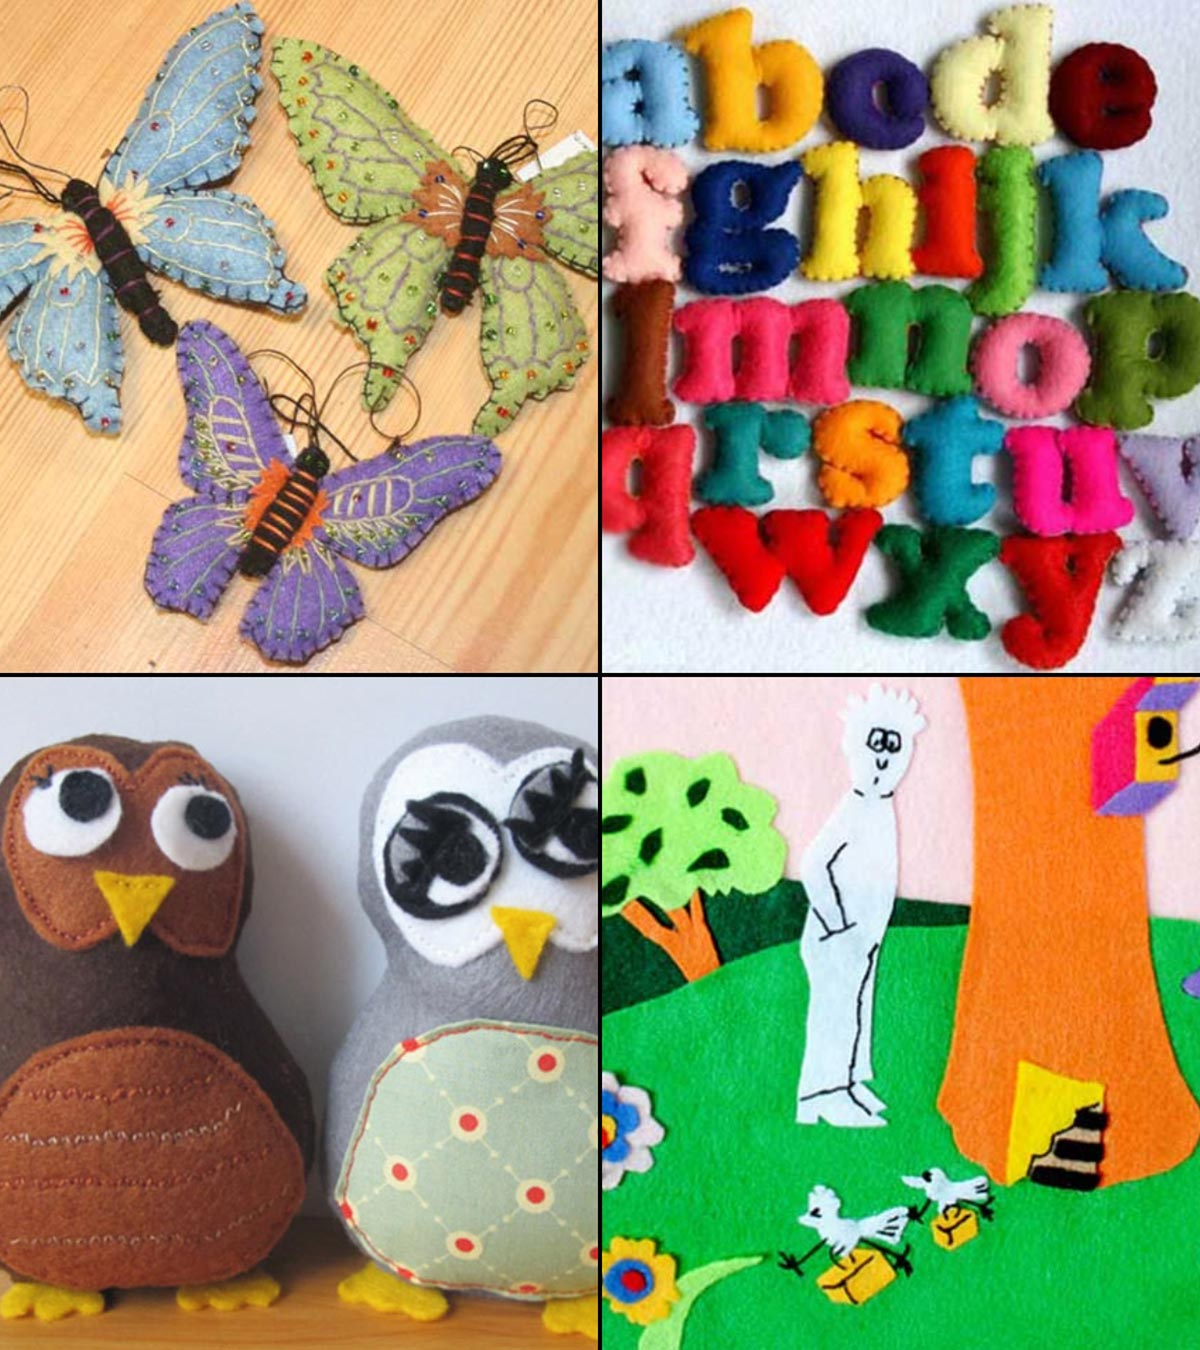 Kids Craft Ideas For Fall That Are Awesome Quick And Easy